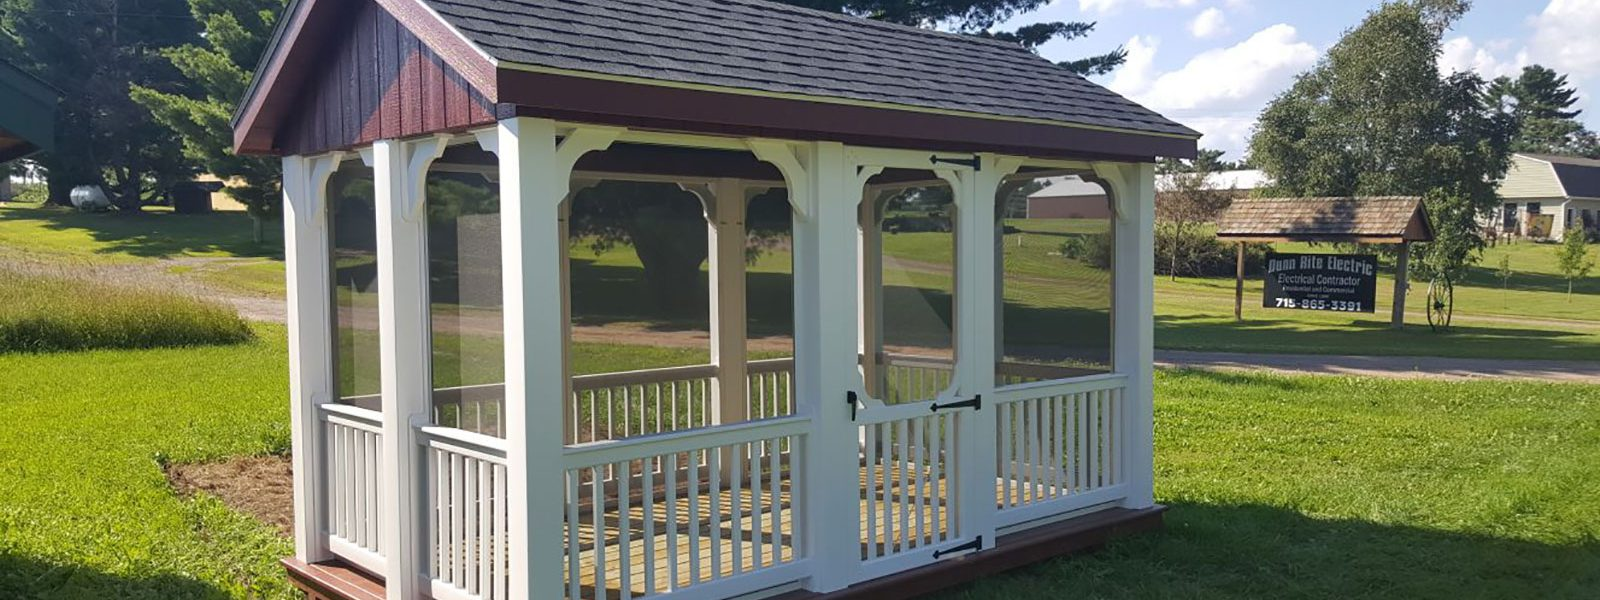 screened pavilion for sale in minnesota